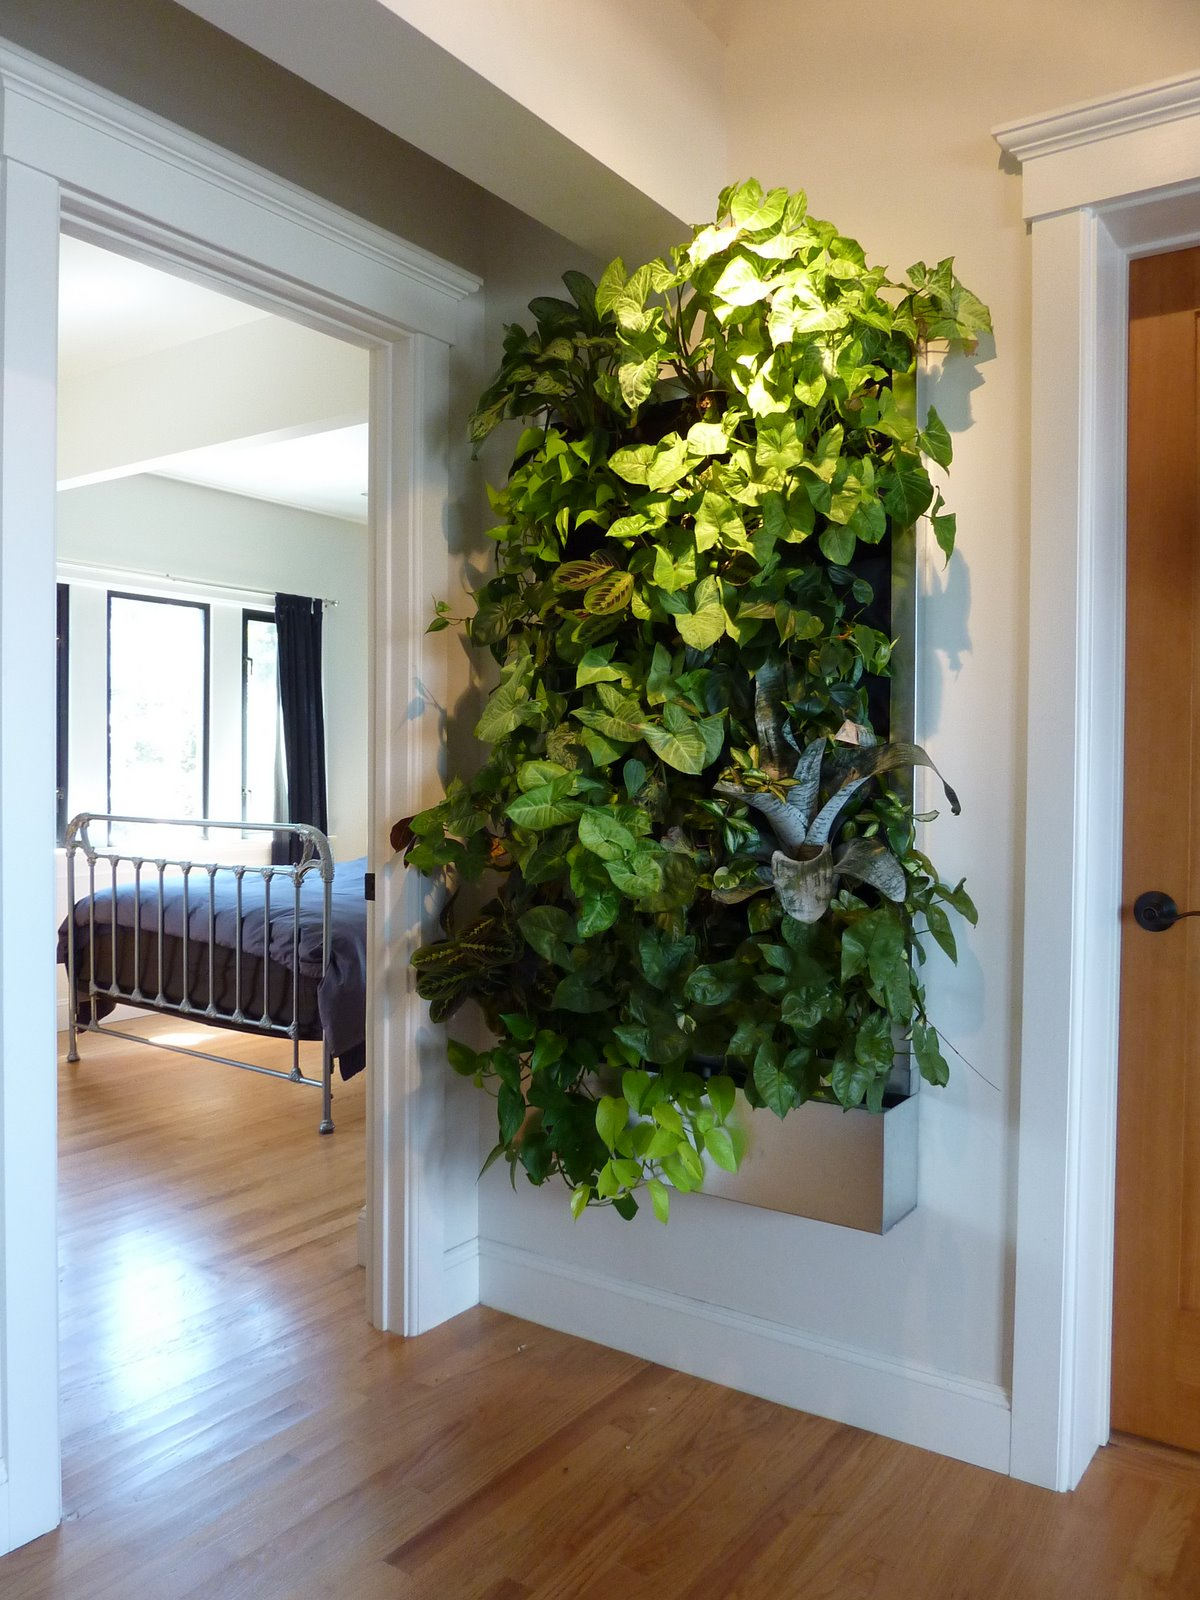 plants on walls vertical garden systems low light tropical living art. Black Bedroom Furniture Sets. Home Design Ideas